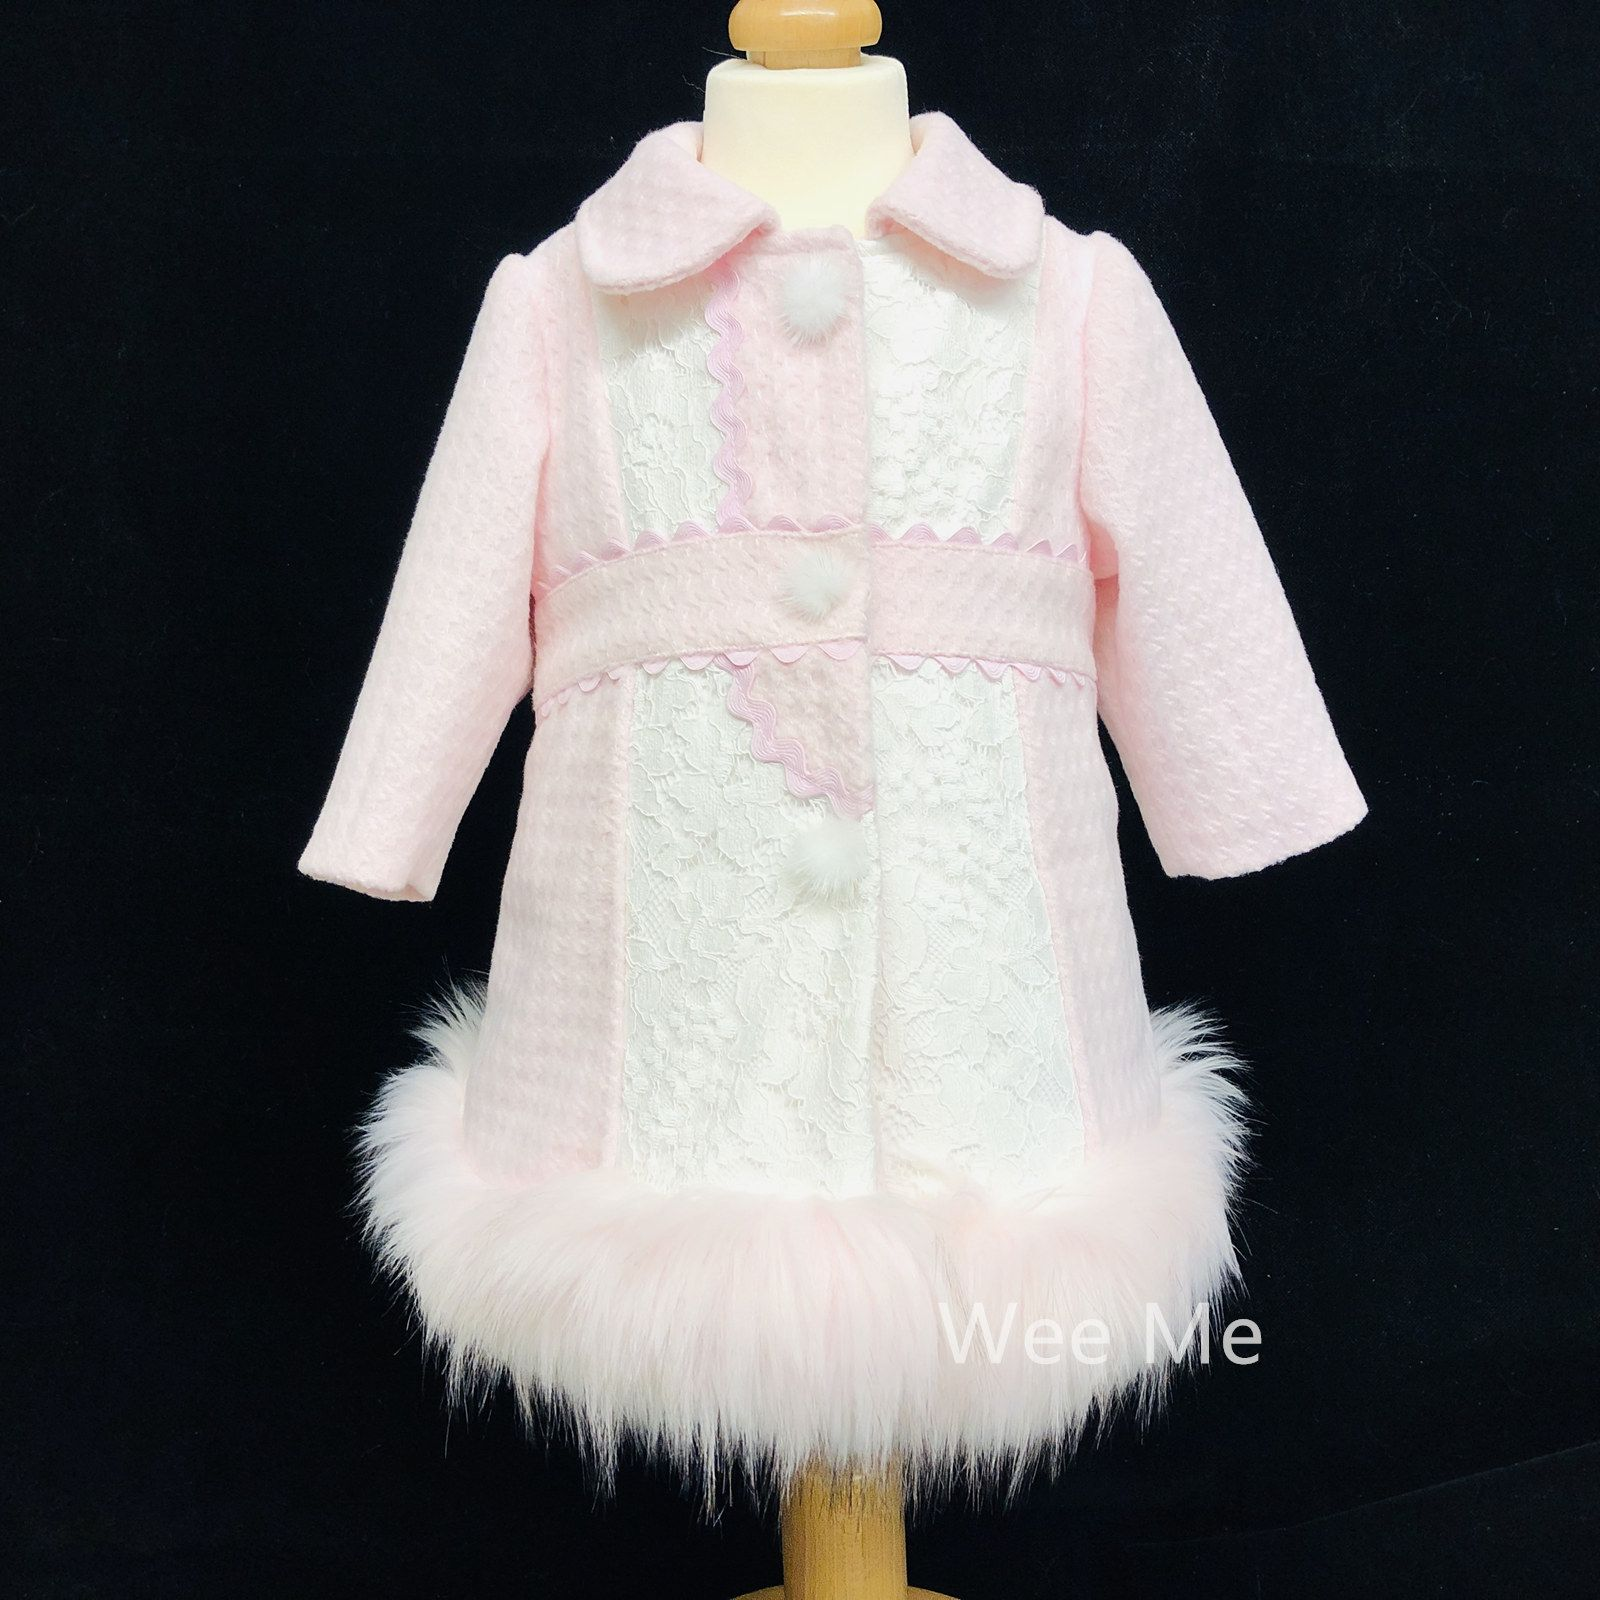 833bbd432 New Arrival Baby Girl Stunning Winter Coat with Fur Bottom